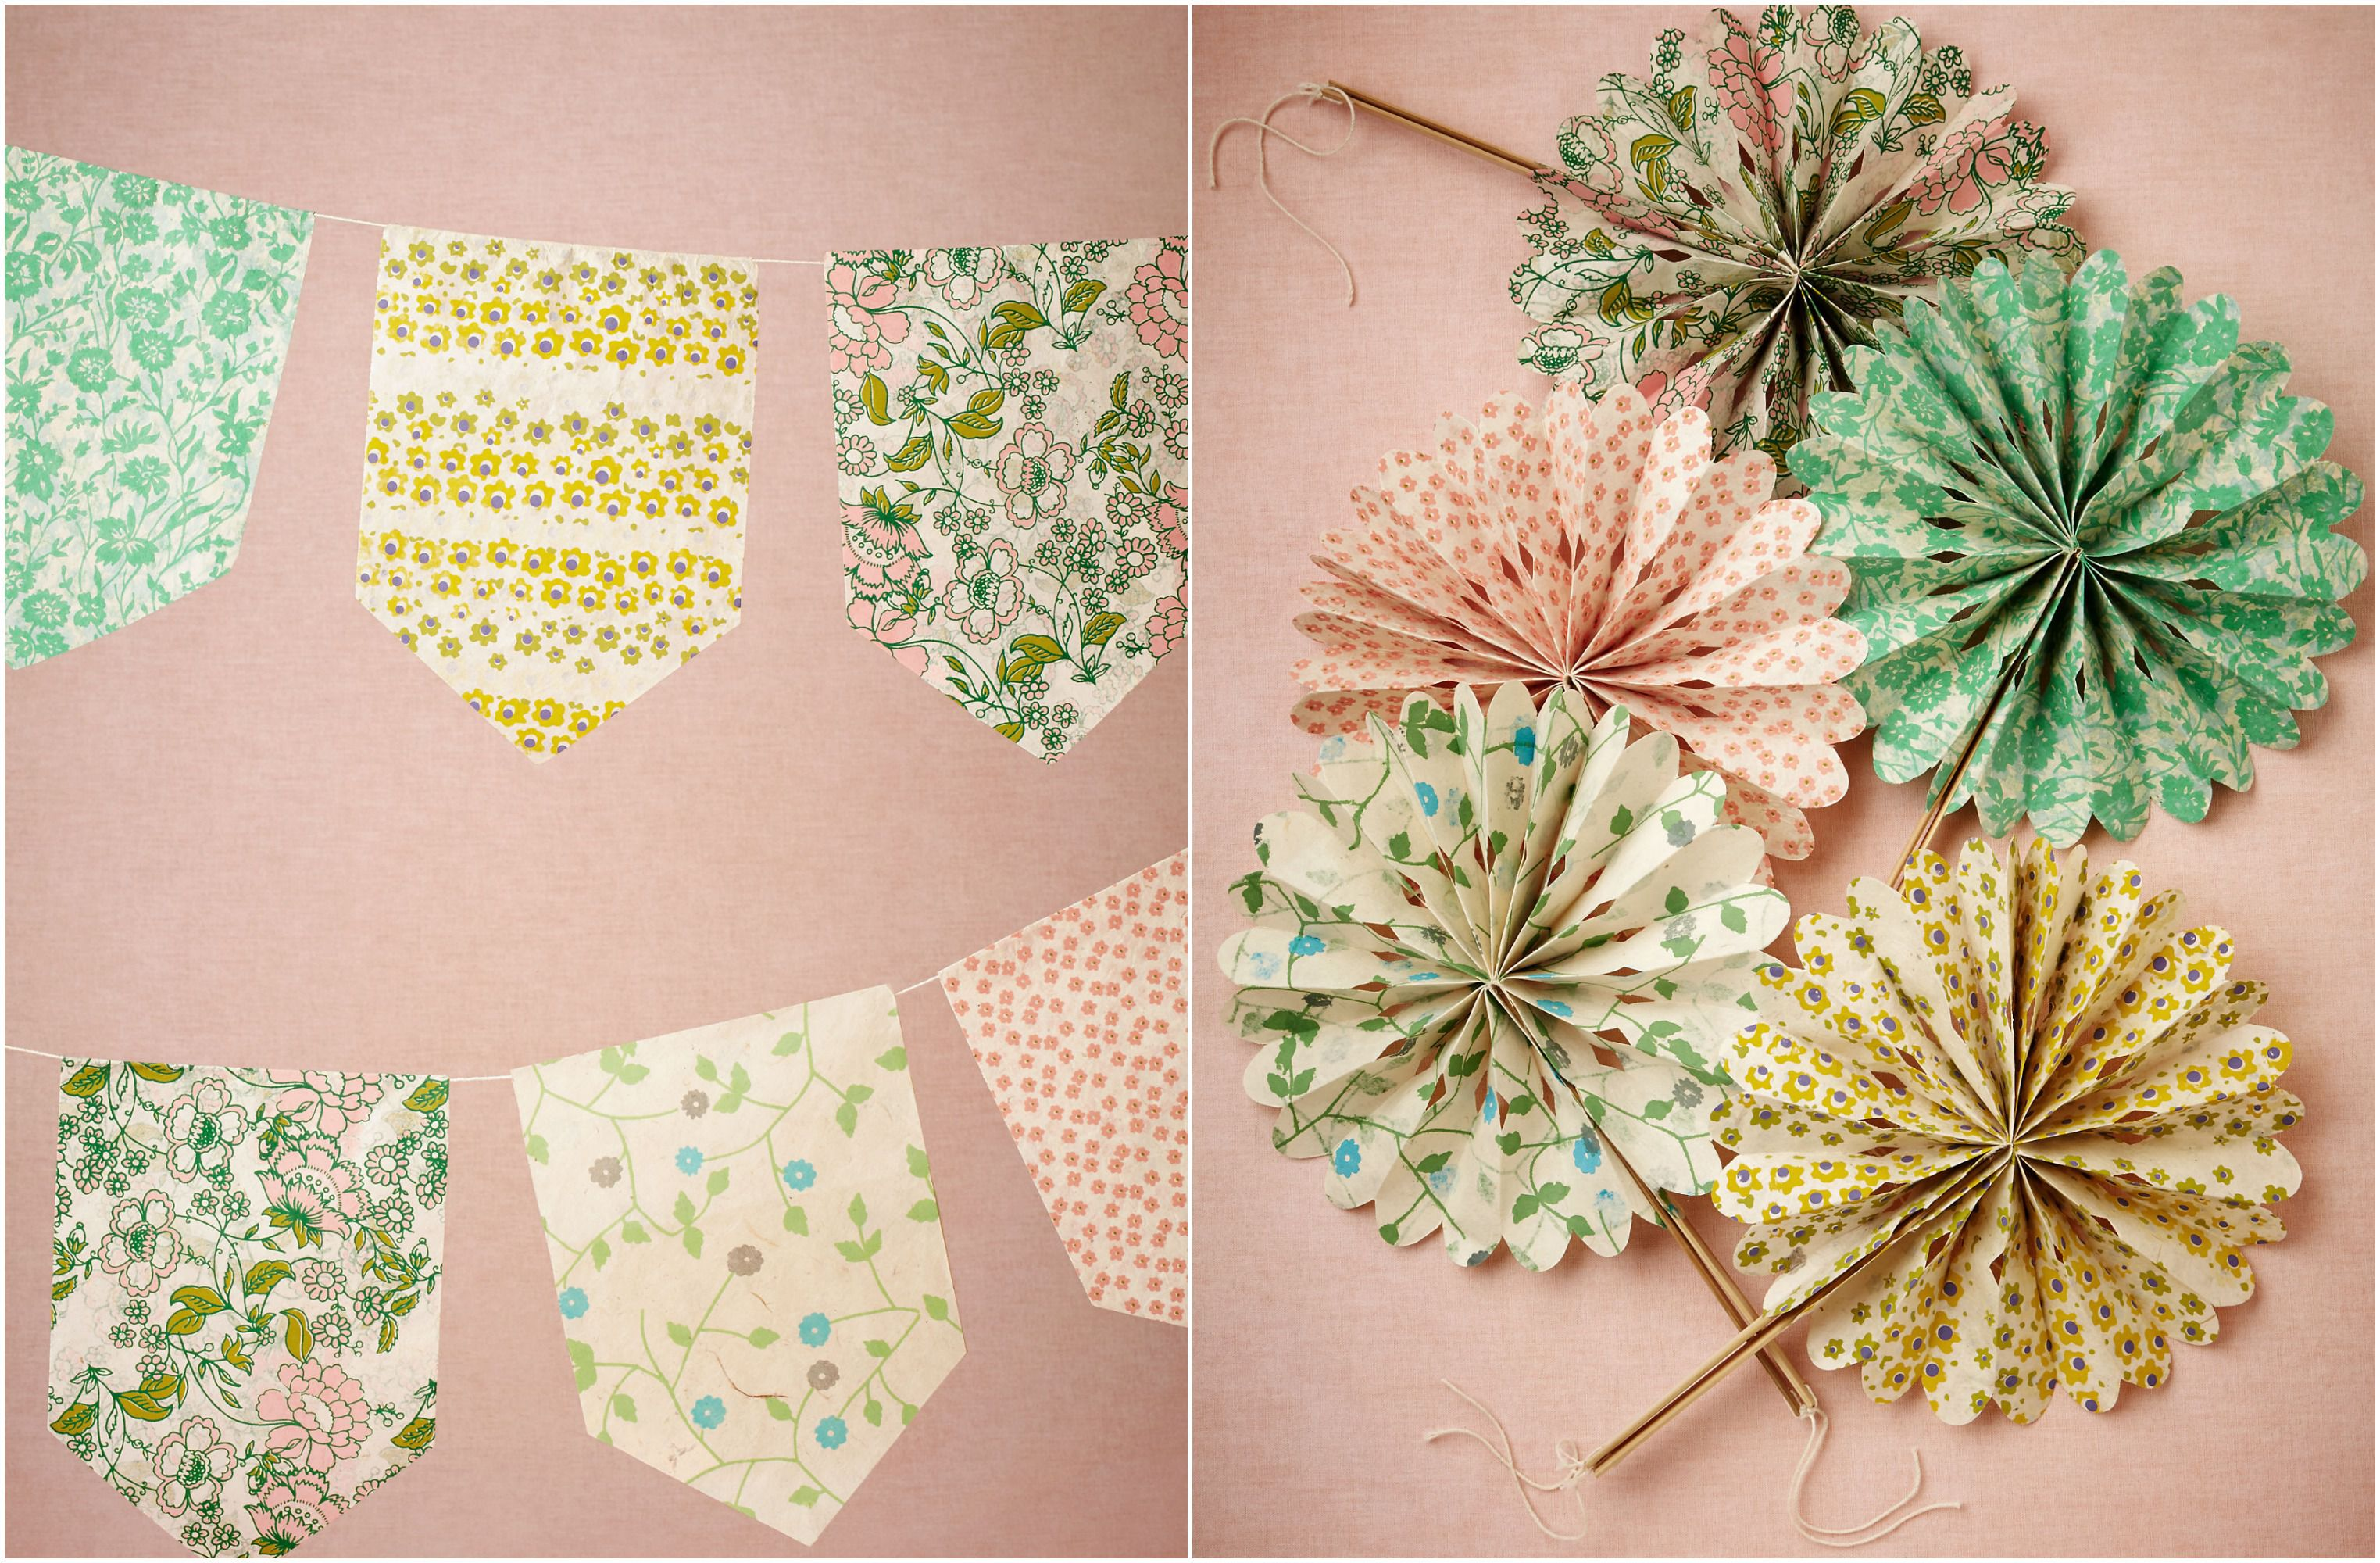 Summer wedding decorations from bhldn rustic wedding chic vintage wedding decorations junglespirit Image collections